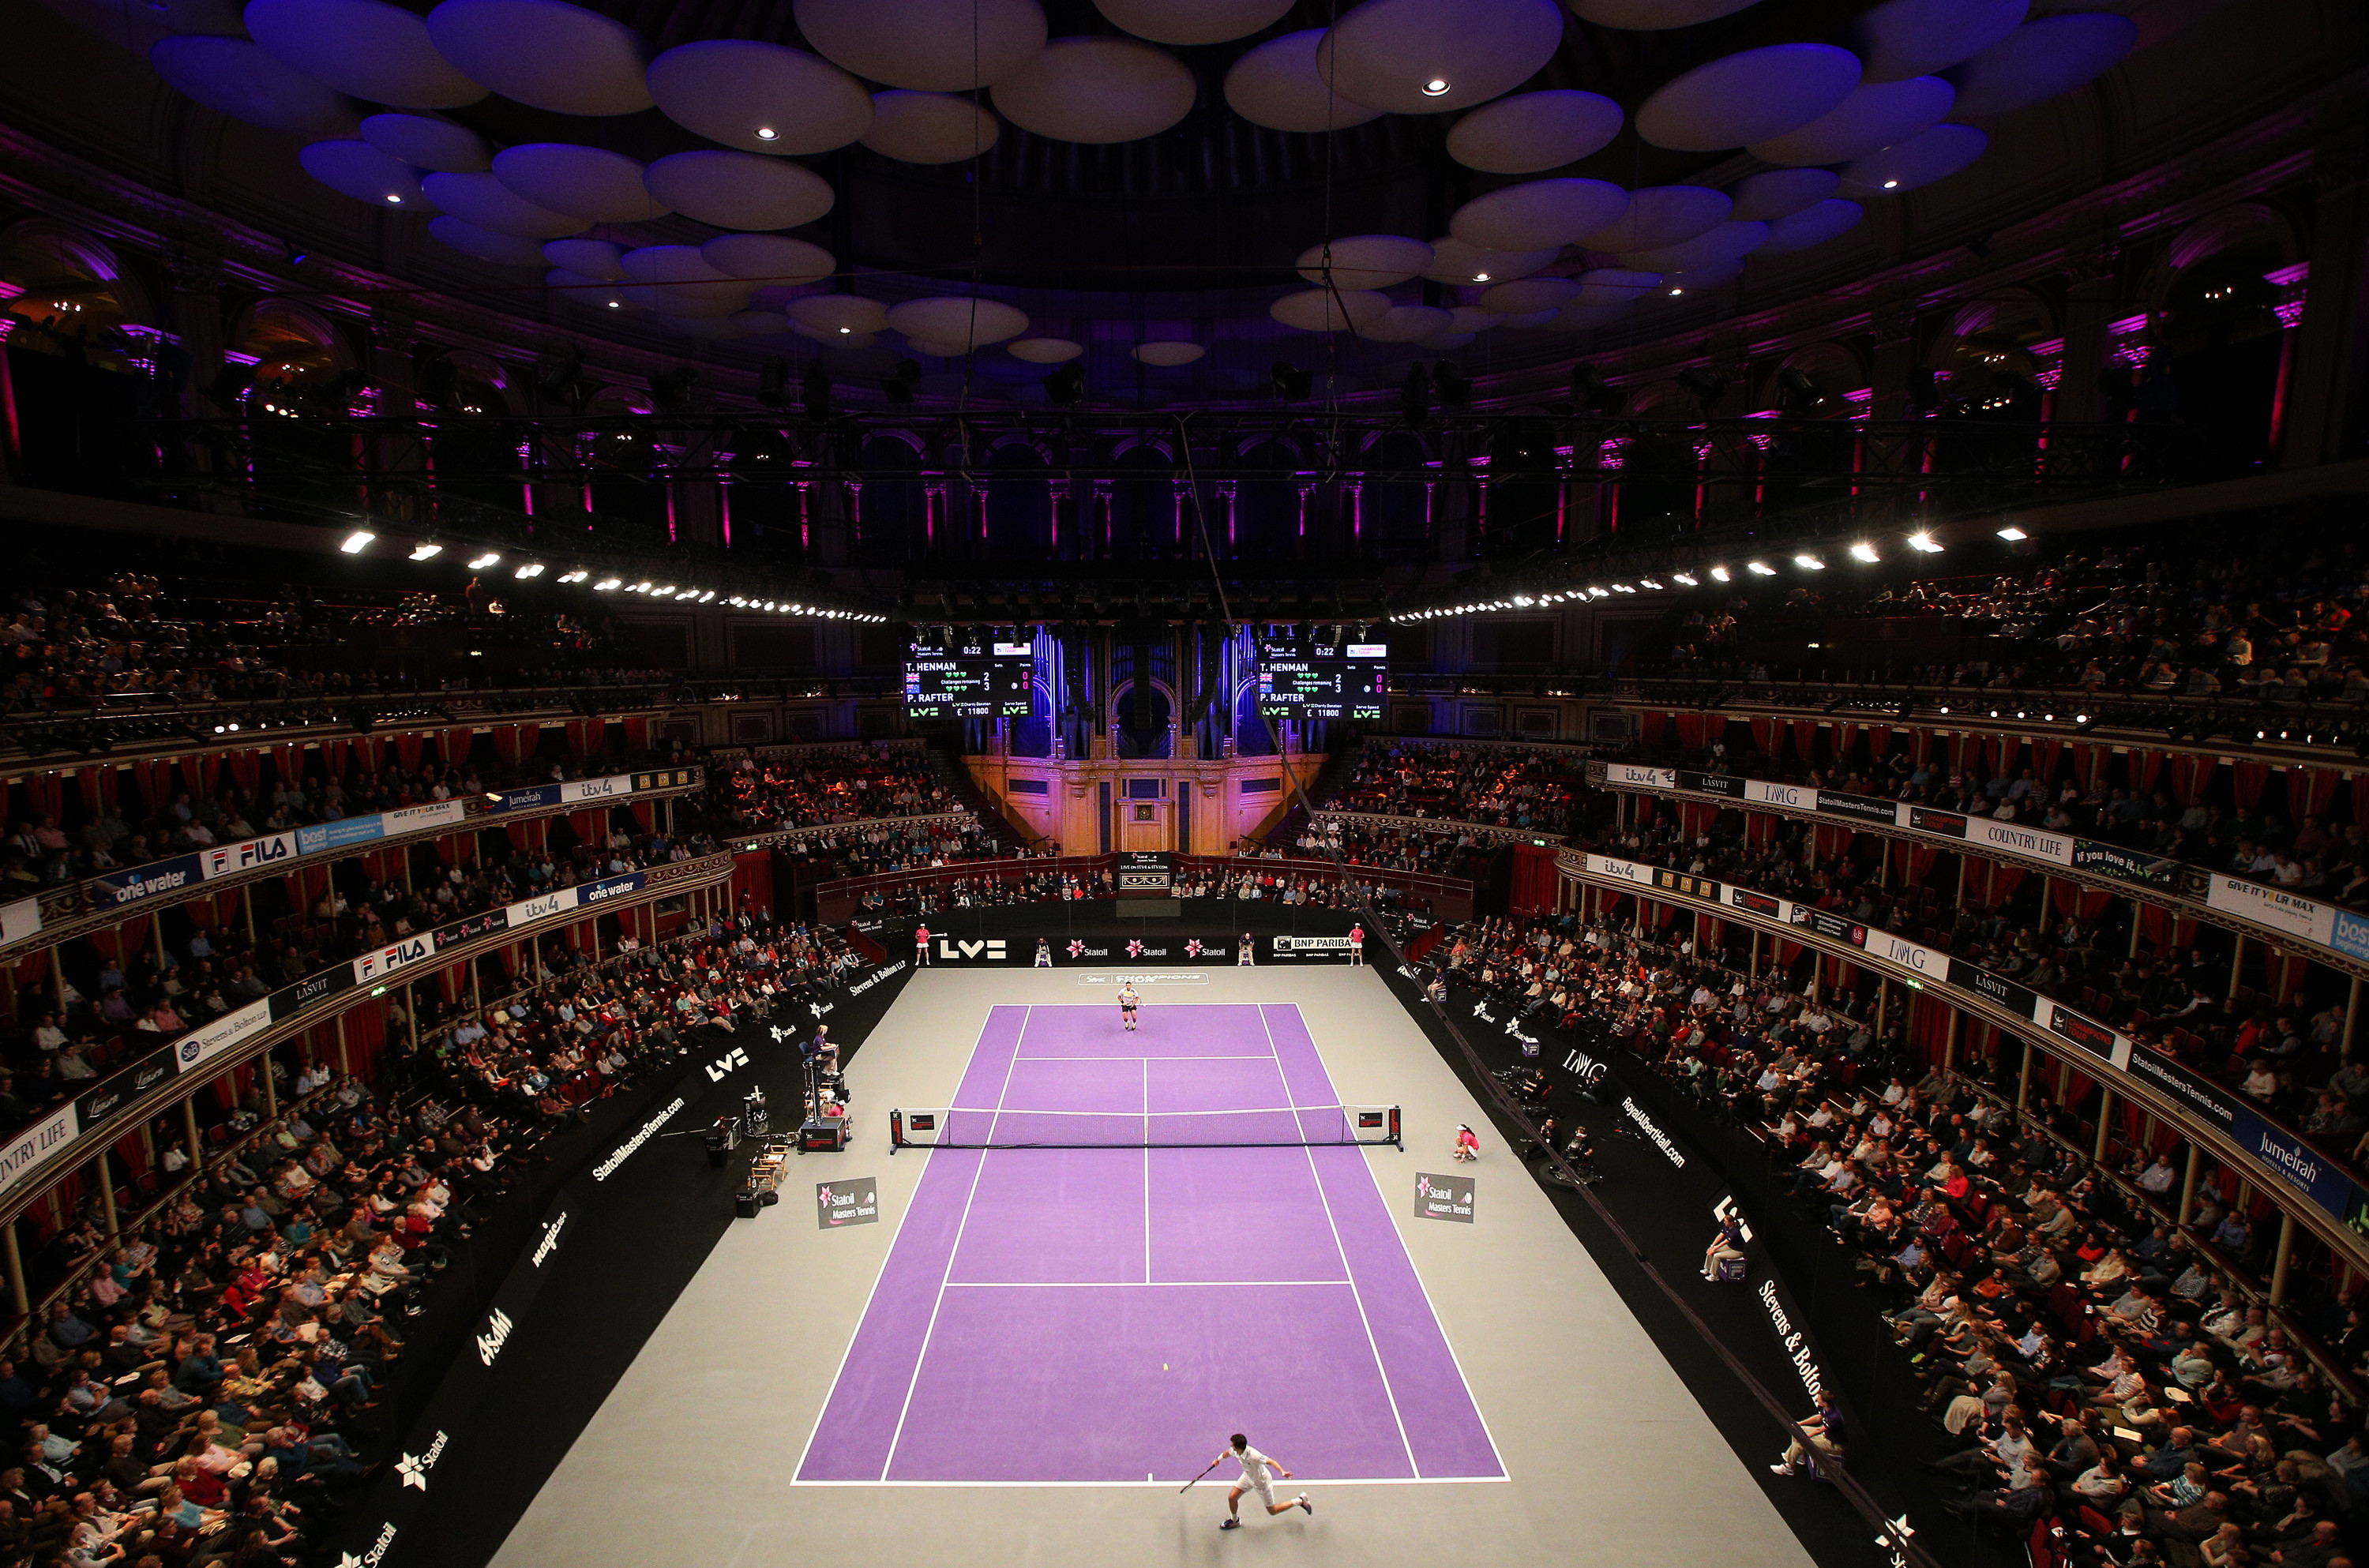 Lot 36 - Champions Tennis at The Royal Albert Hall Watch the greatest players on the grandest stage! Grand